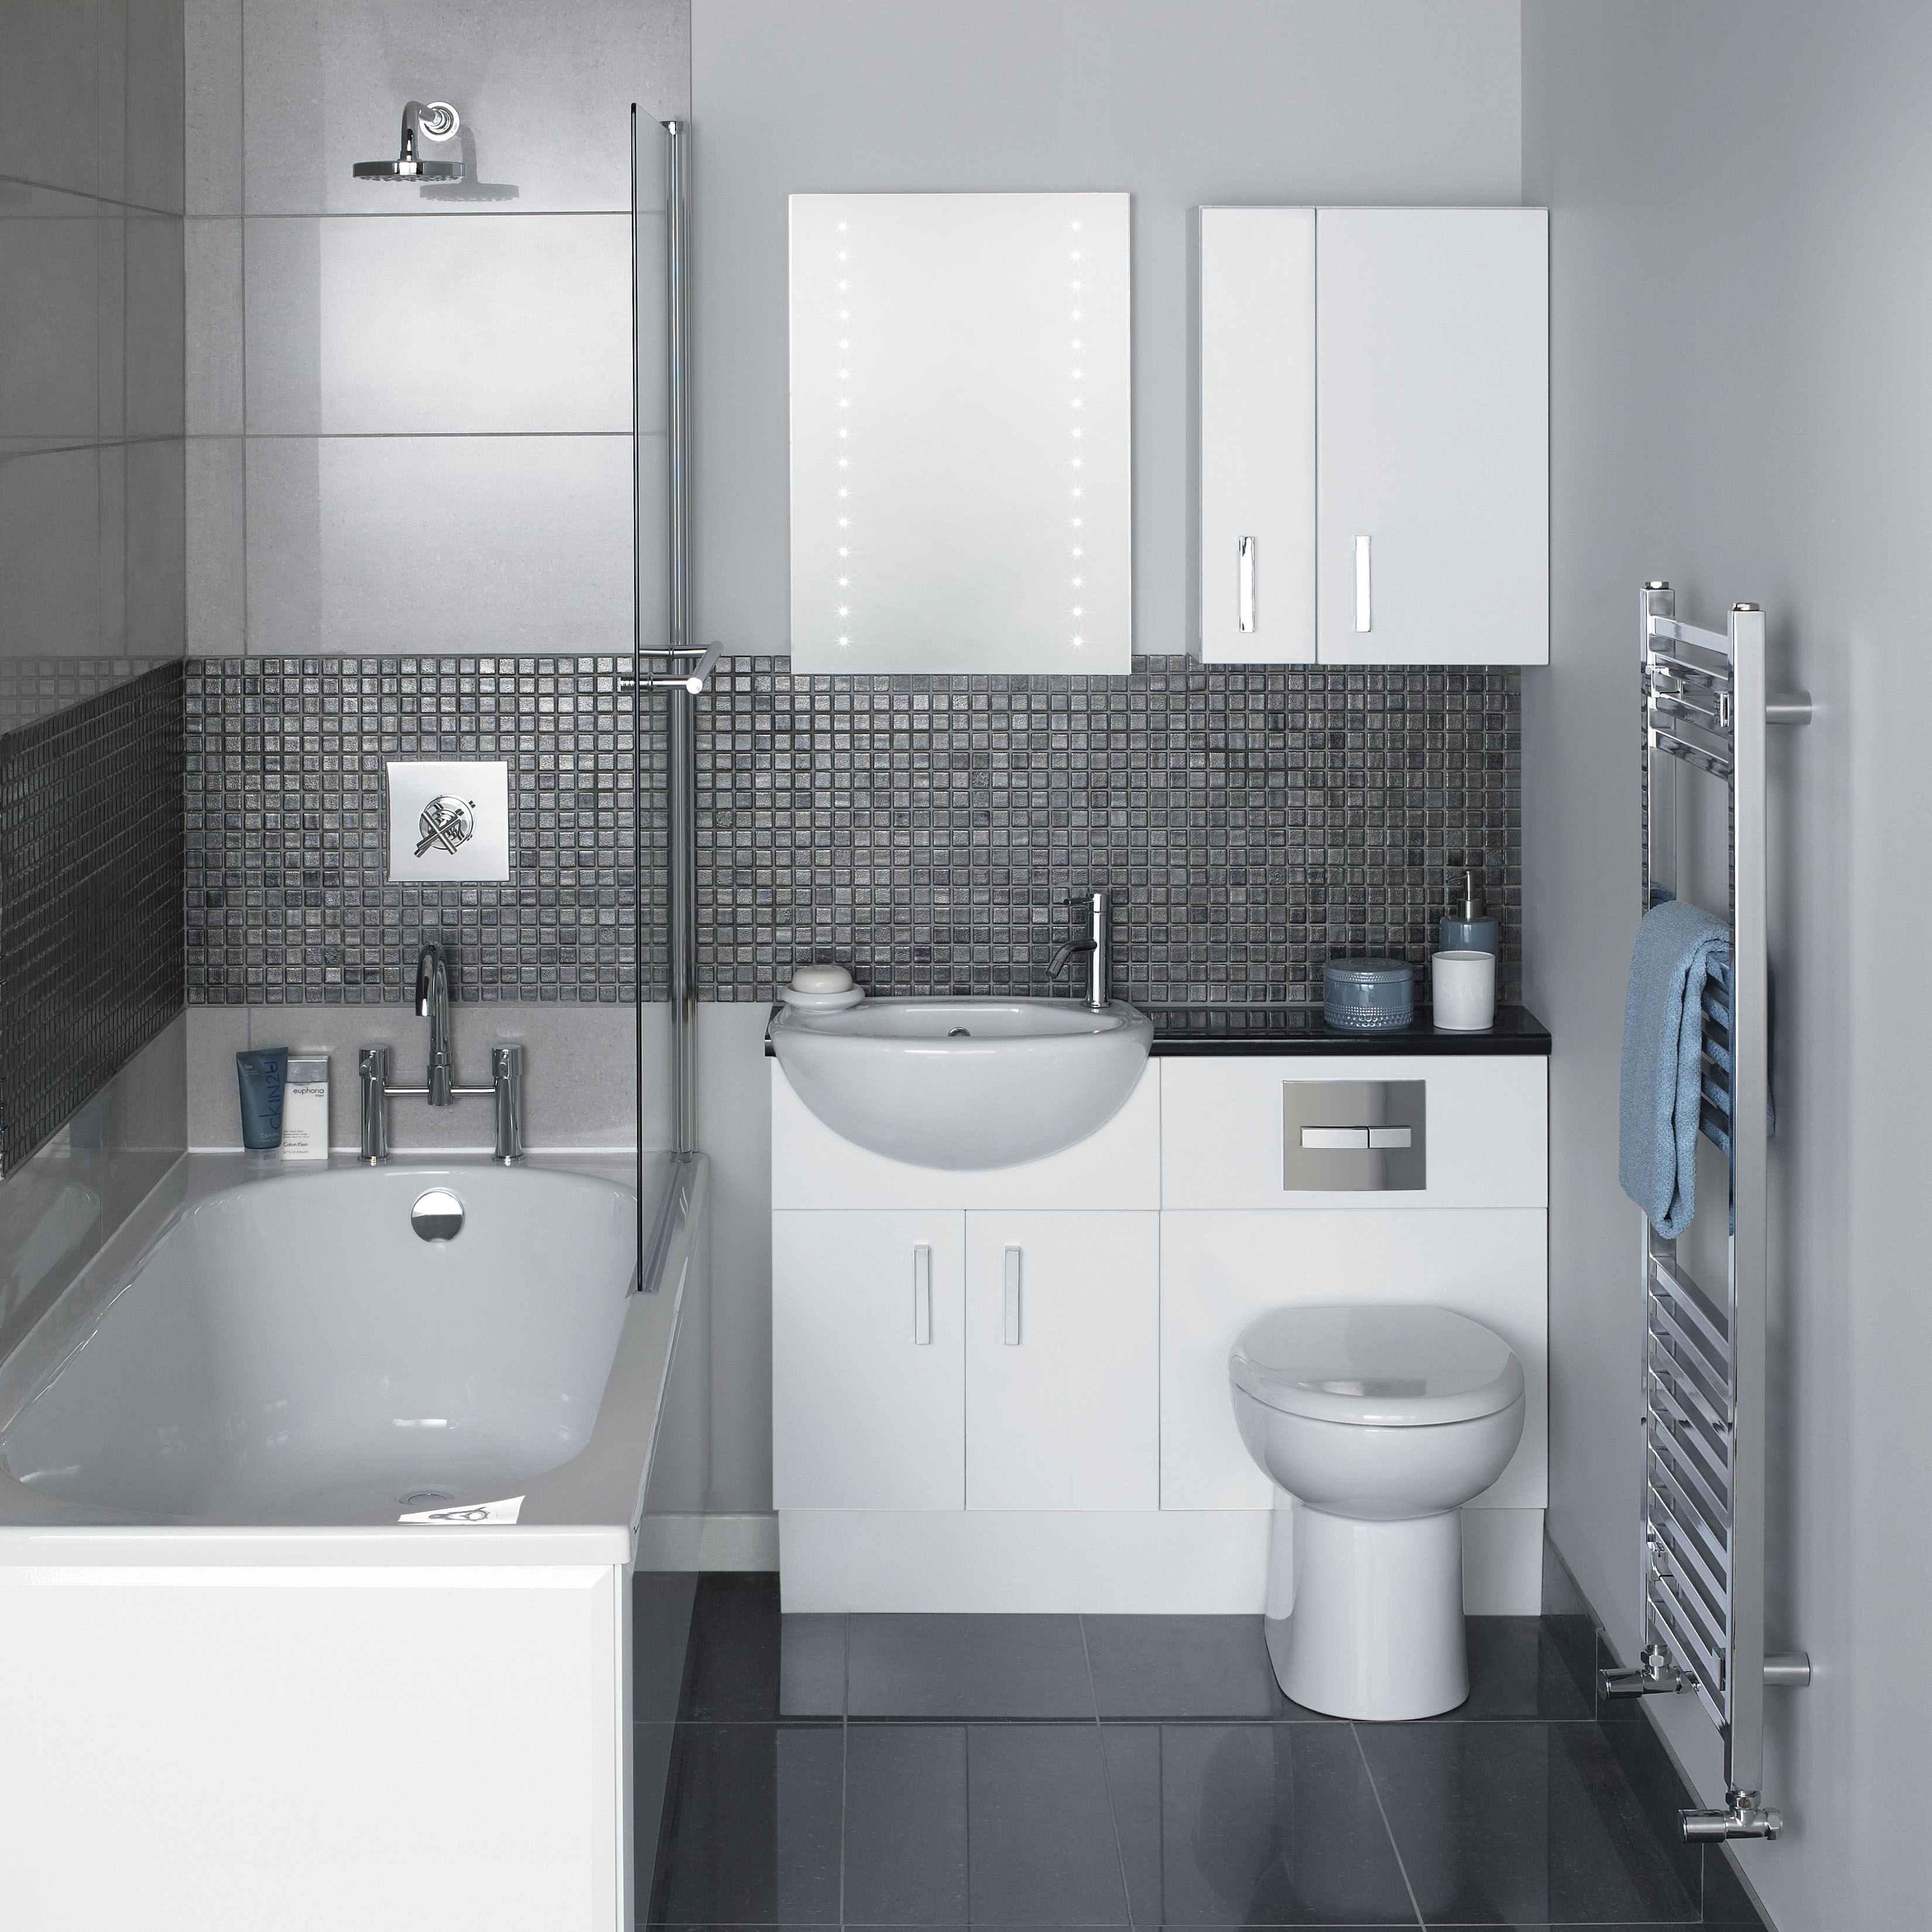 Bathroom suites glasgow - Linear Fitted Furniture In White In En Suite 200mm Deep